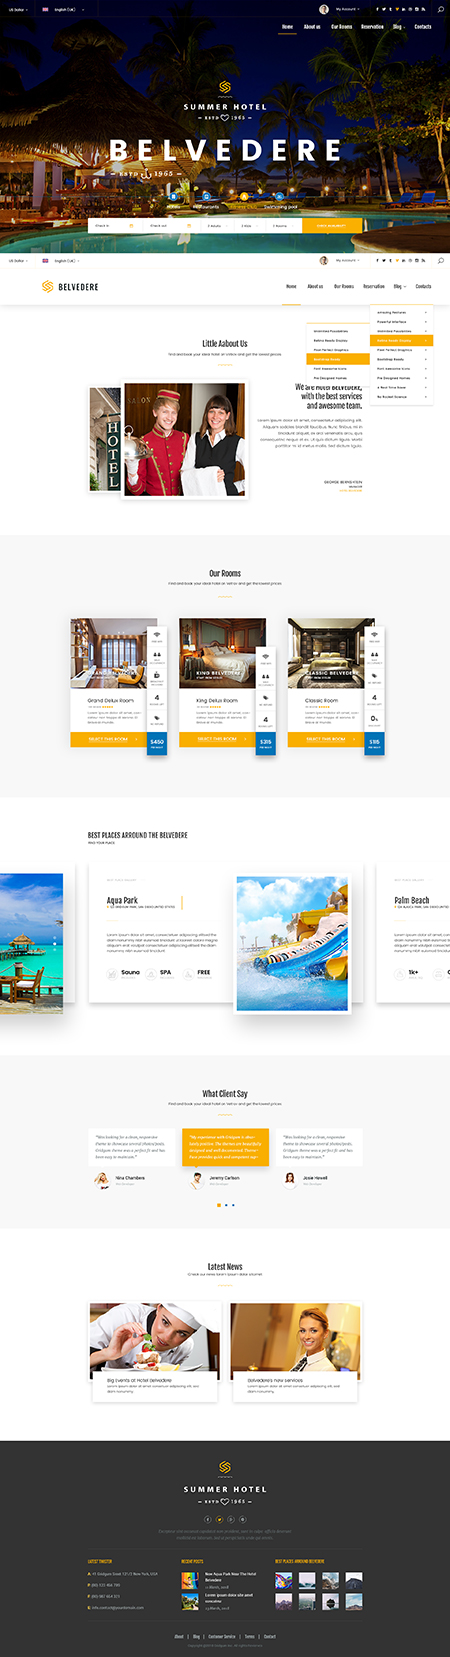 Name: Hotel Belvedere - Type: Bootstrap template - Item number:300111939